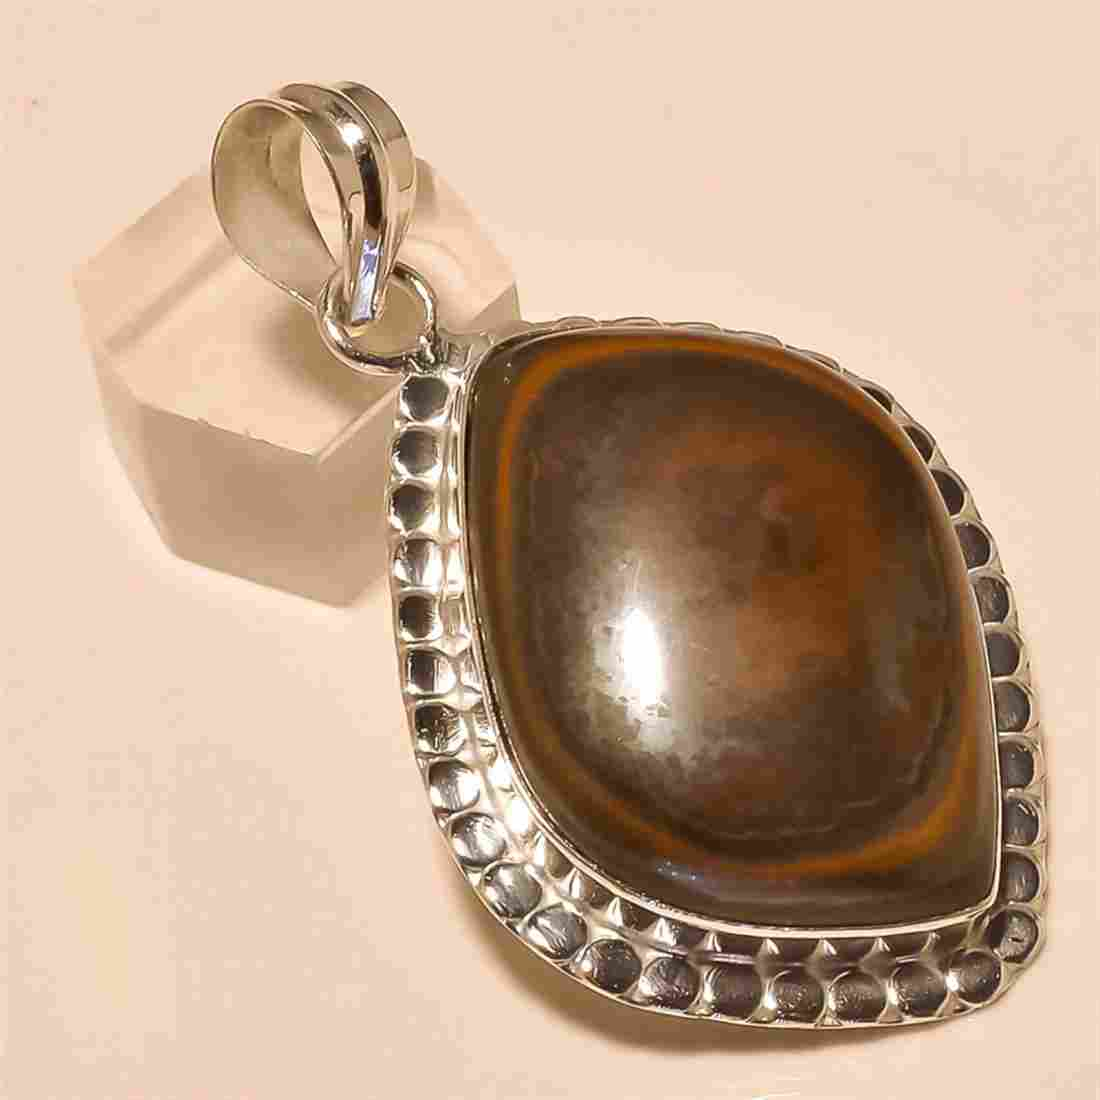 Copper Obsidian Pendant Solid Sterling Silver